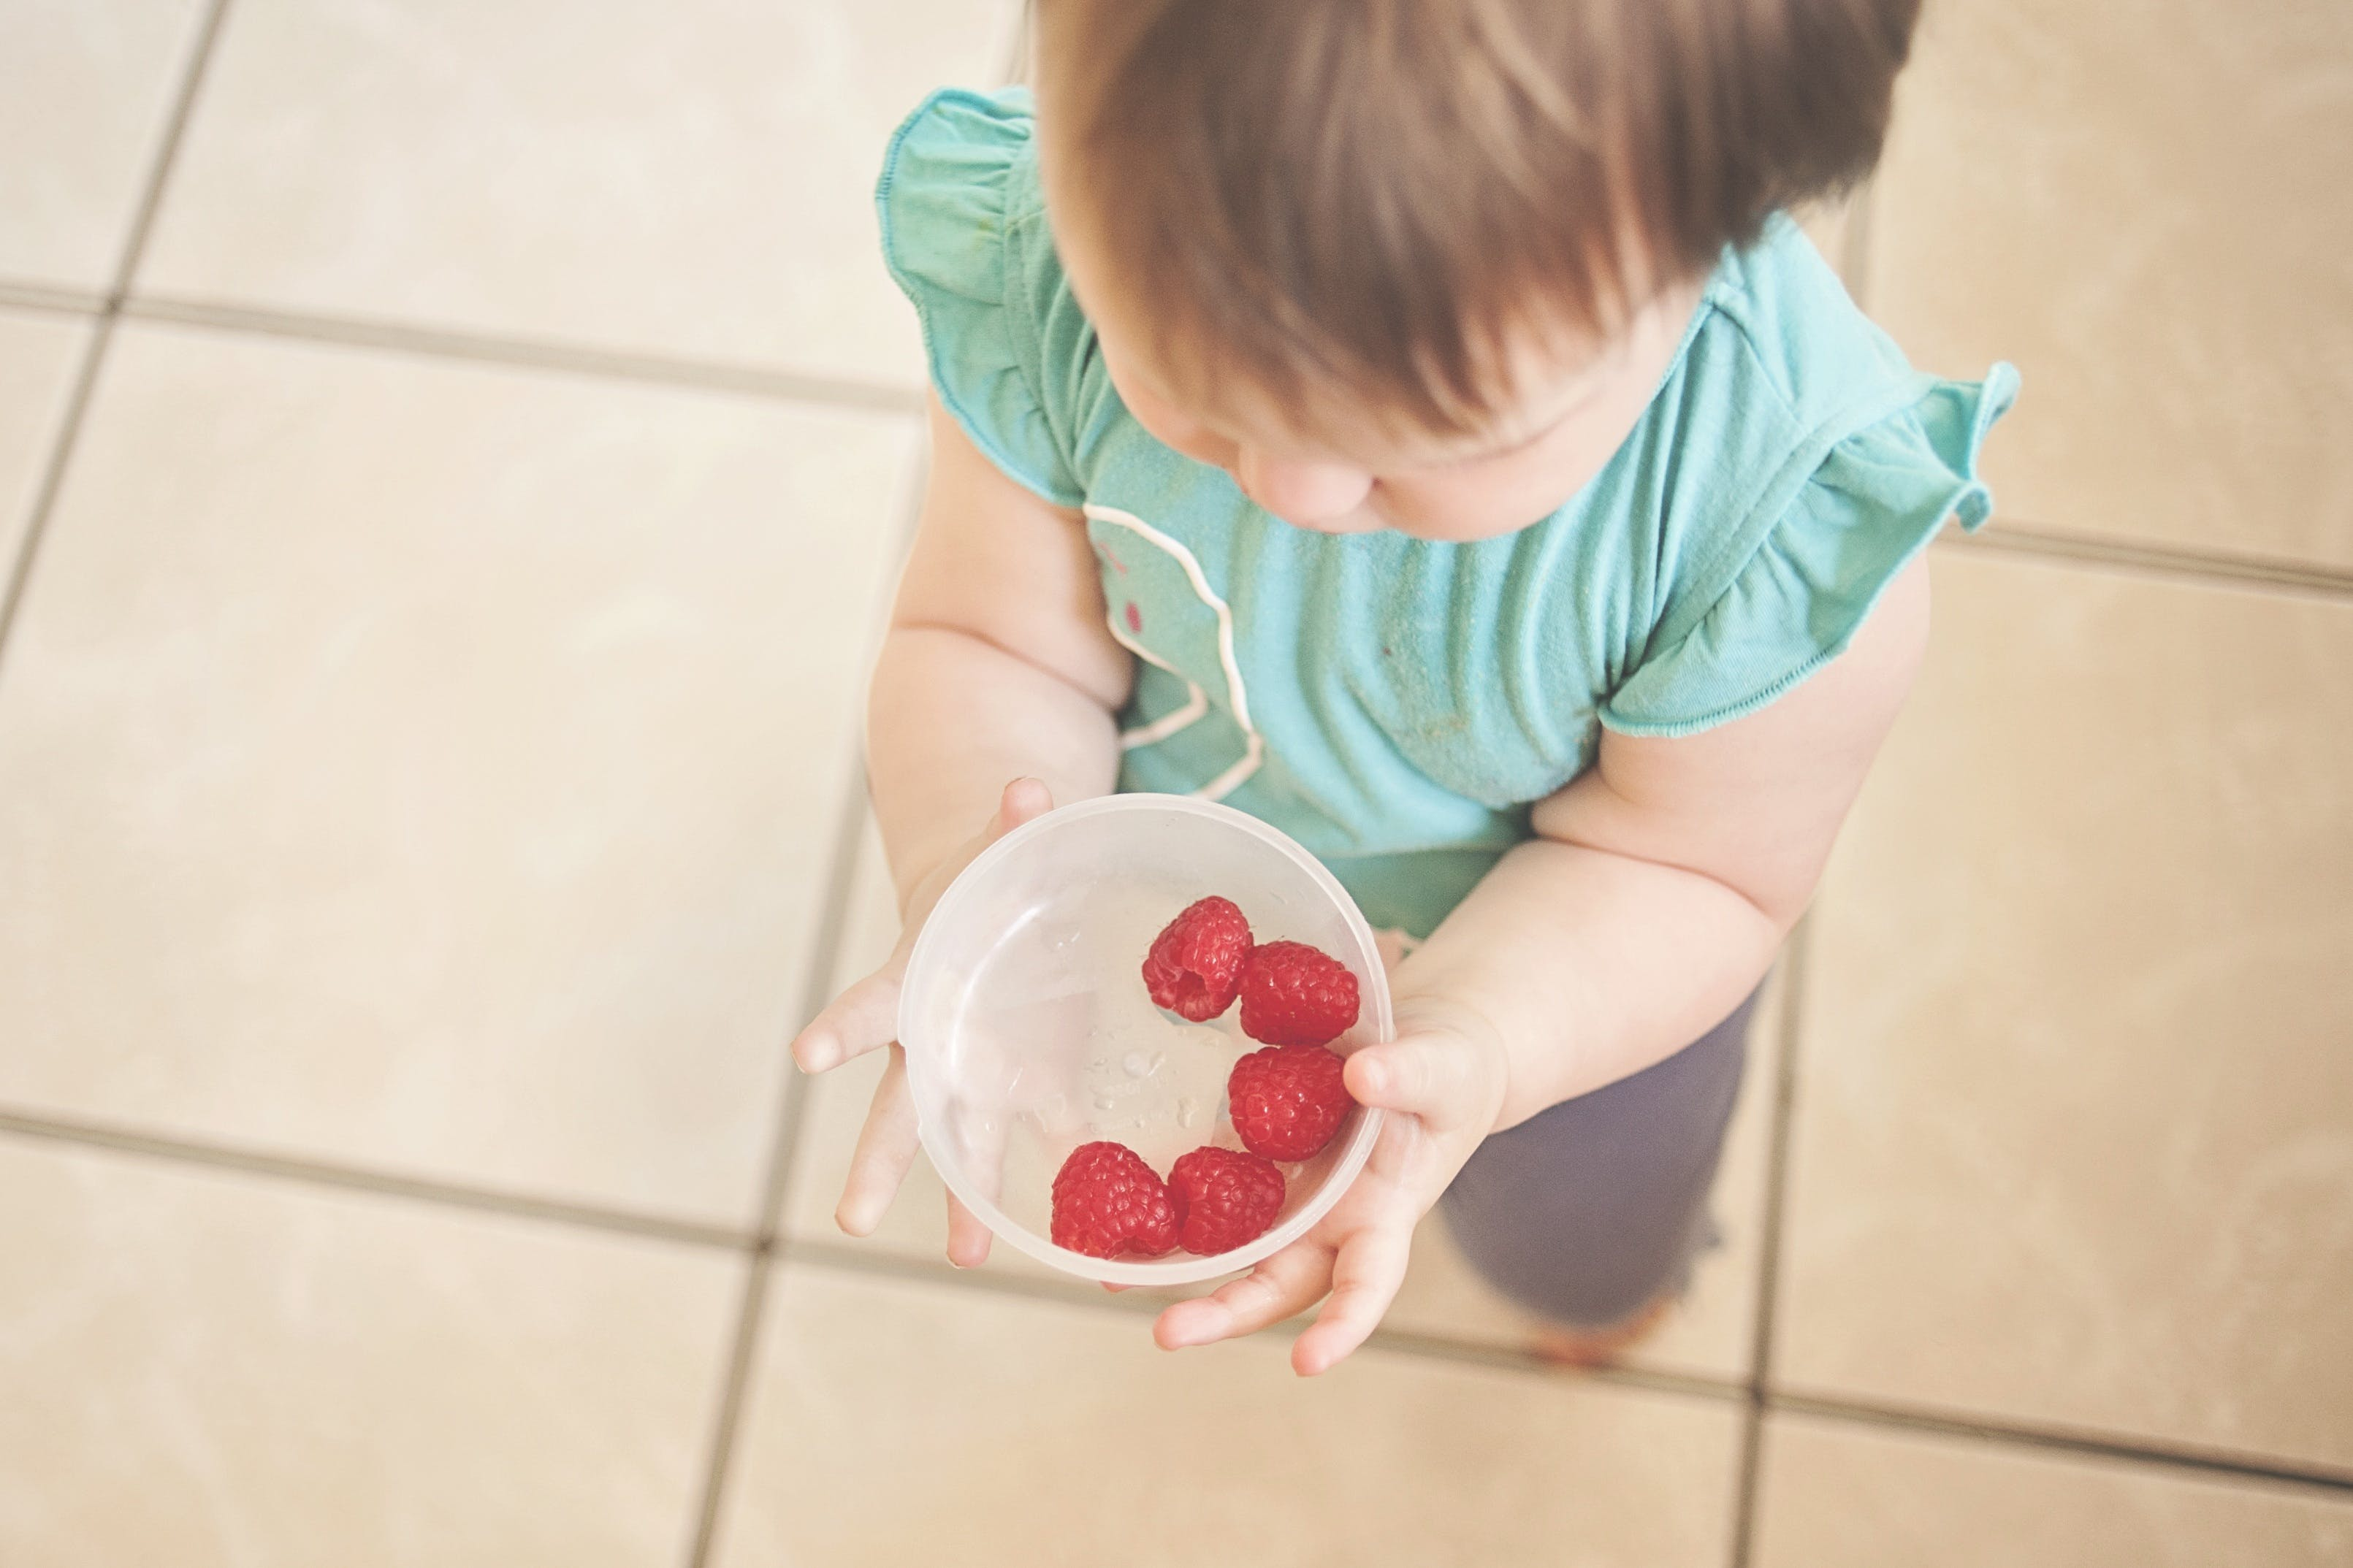 Toddler Holding White Bowl